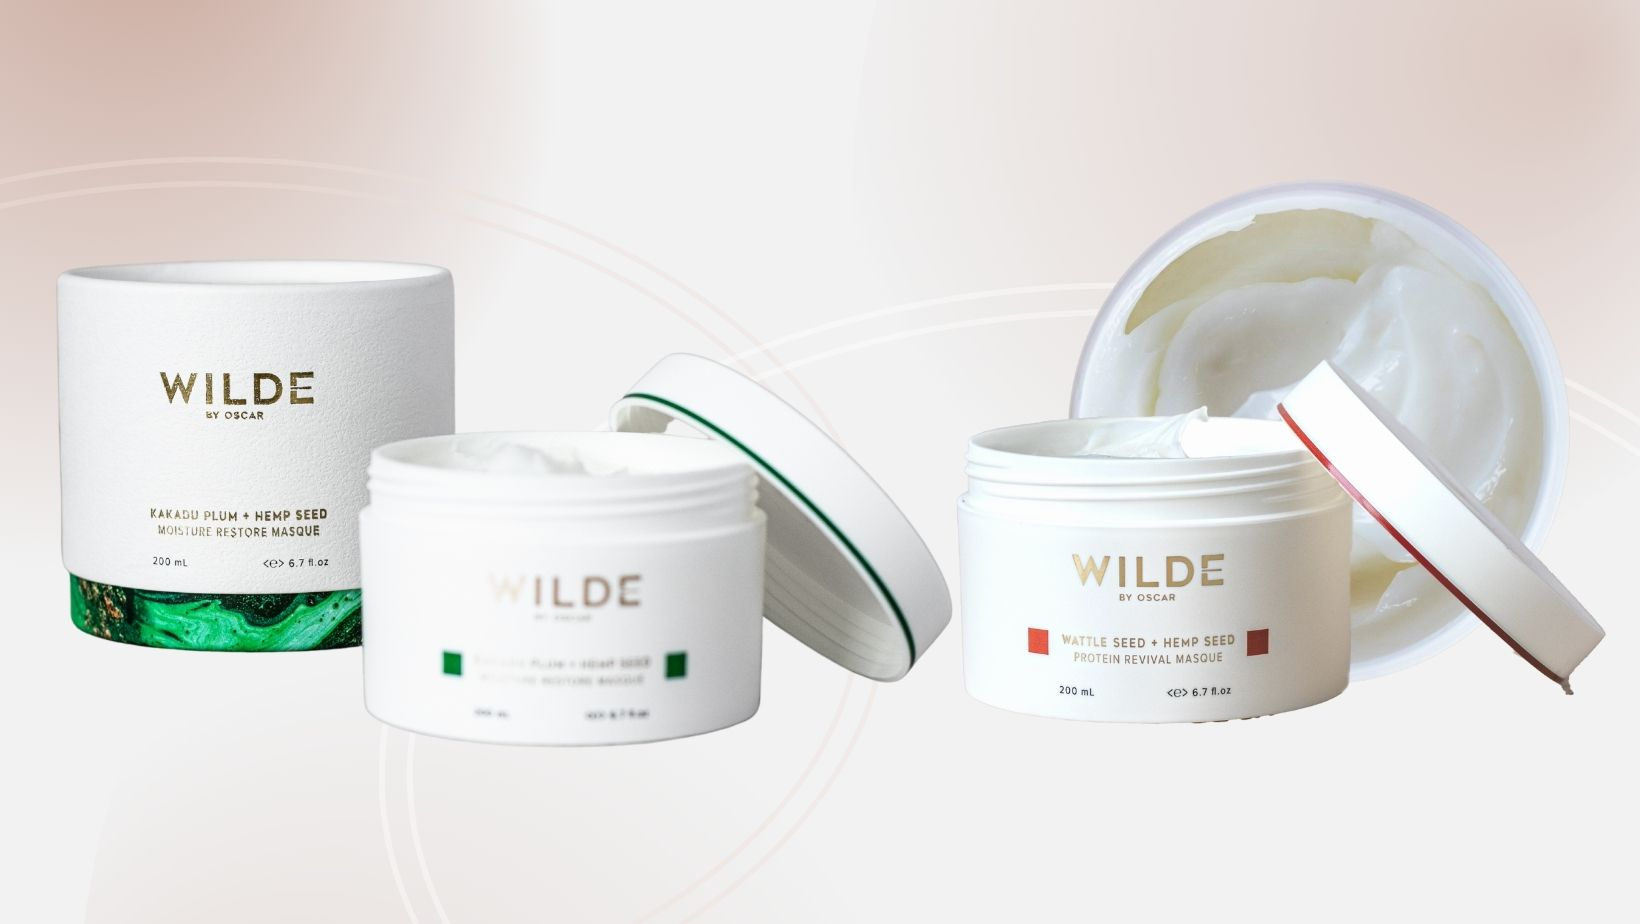 hair masque product image